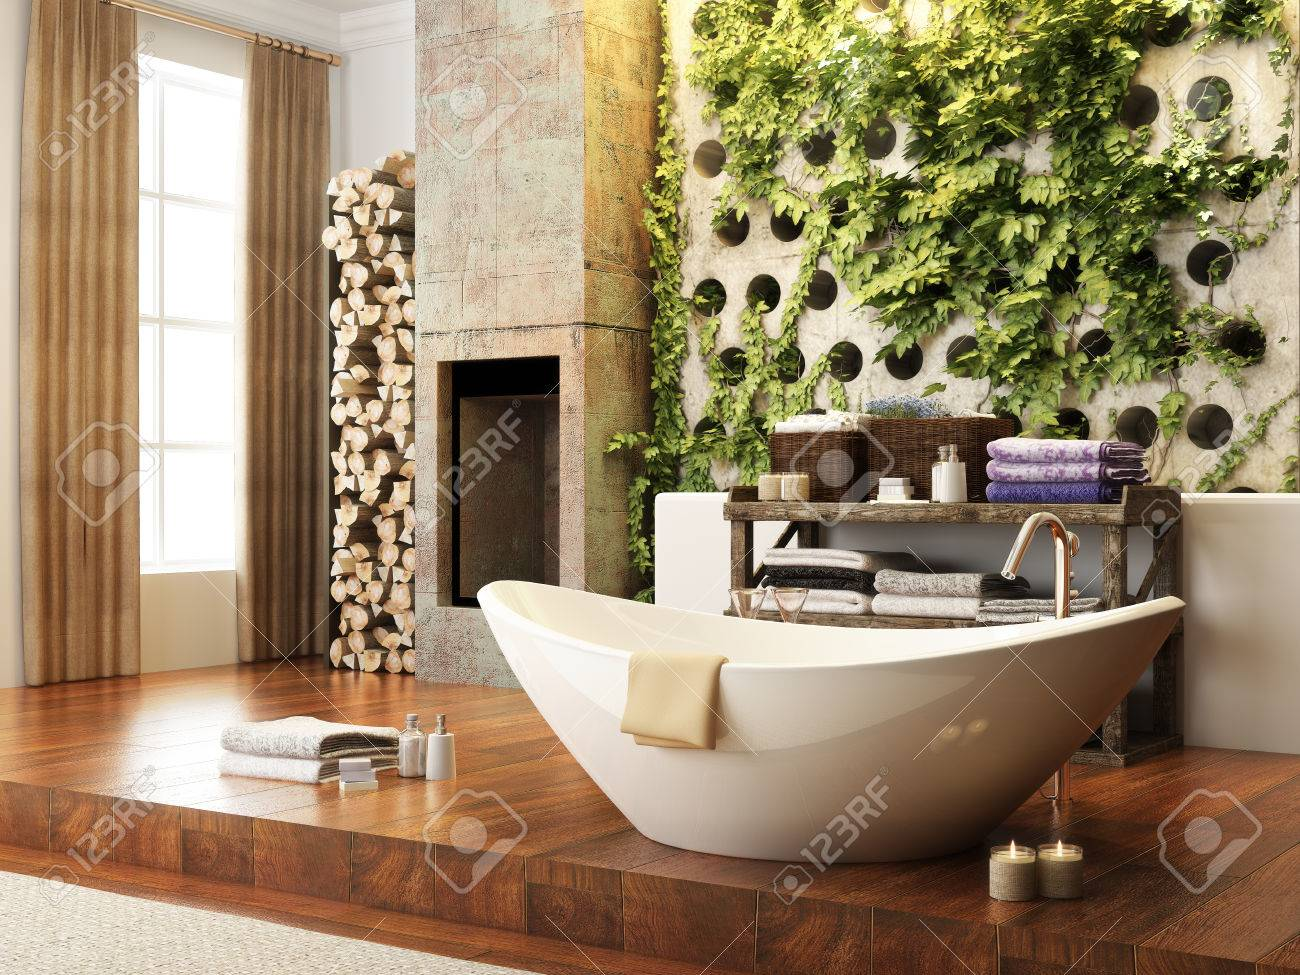 Rustic Accents Open Concept Bathroom With Wall Atrium And Fireplace . 3d  Rendering Stock Photo